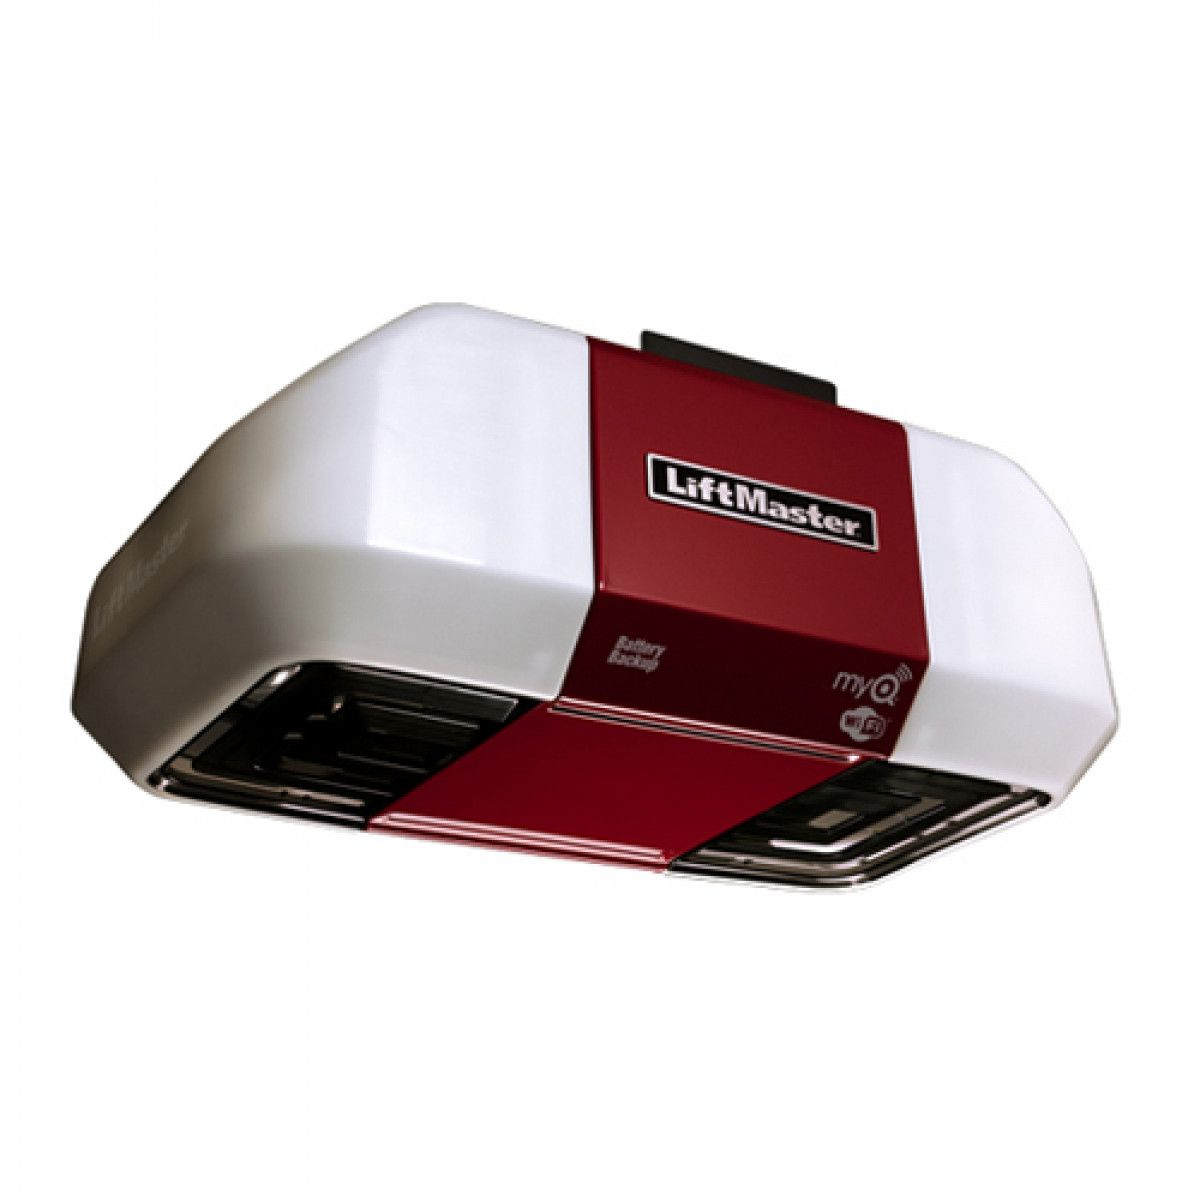 Liftmaster 8557w 3 4 Hp Ac Belt Drive Wi Fi Garage Door Opener Garage Doors Garage Door Opener Best Garage Doors